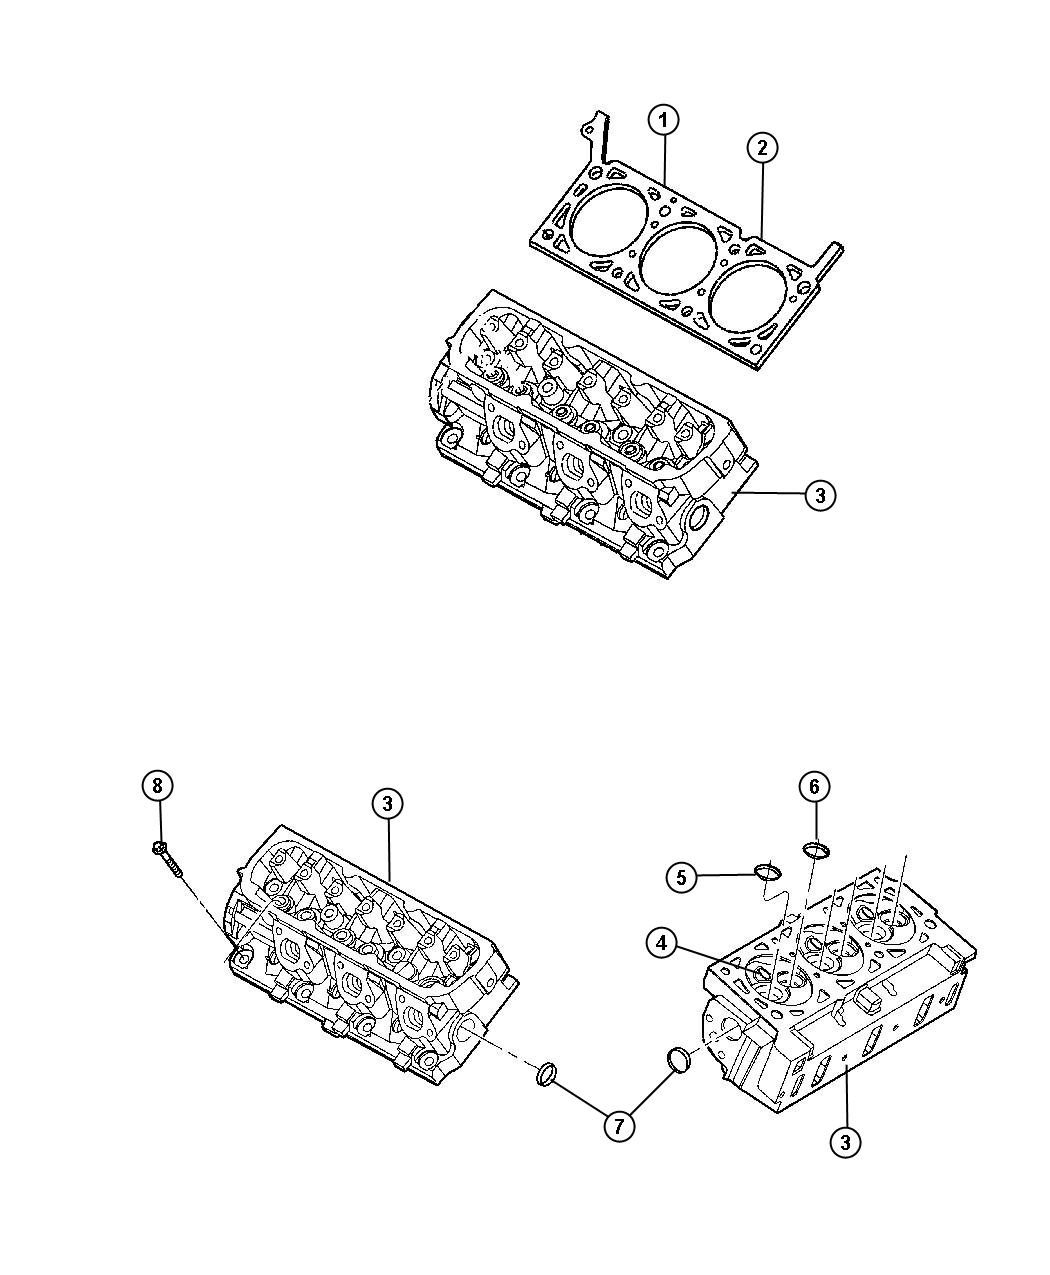 Cylinder Heads 3.3L [3.3L V6 OHV Engine]. Diagram